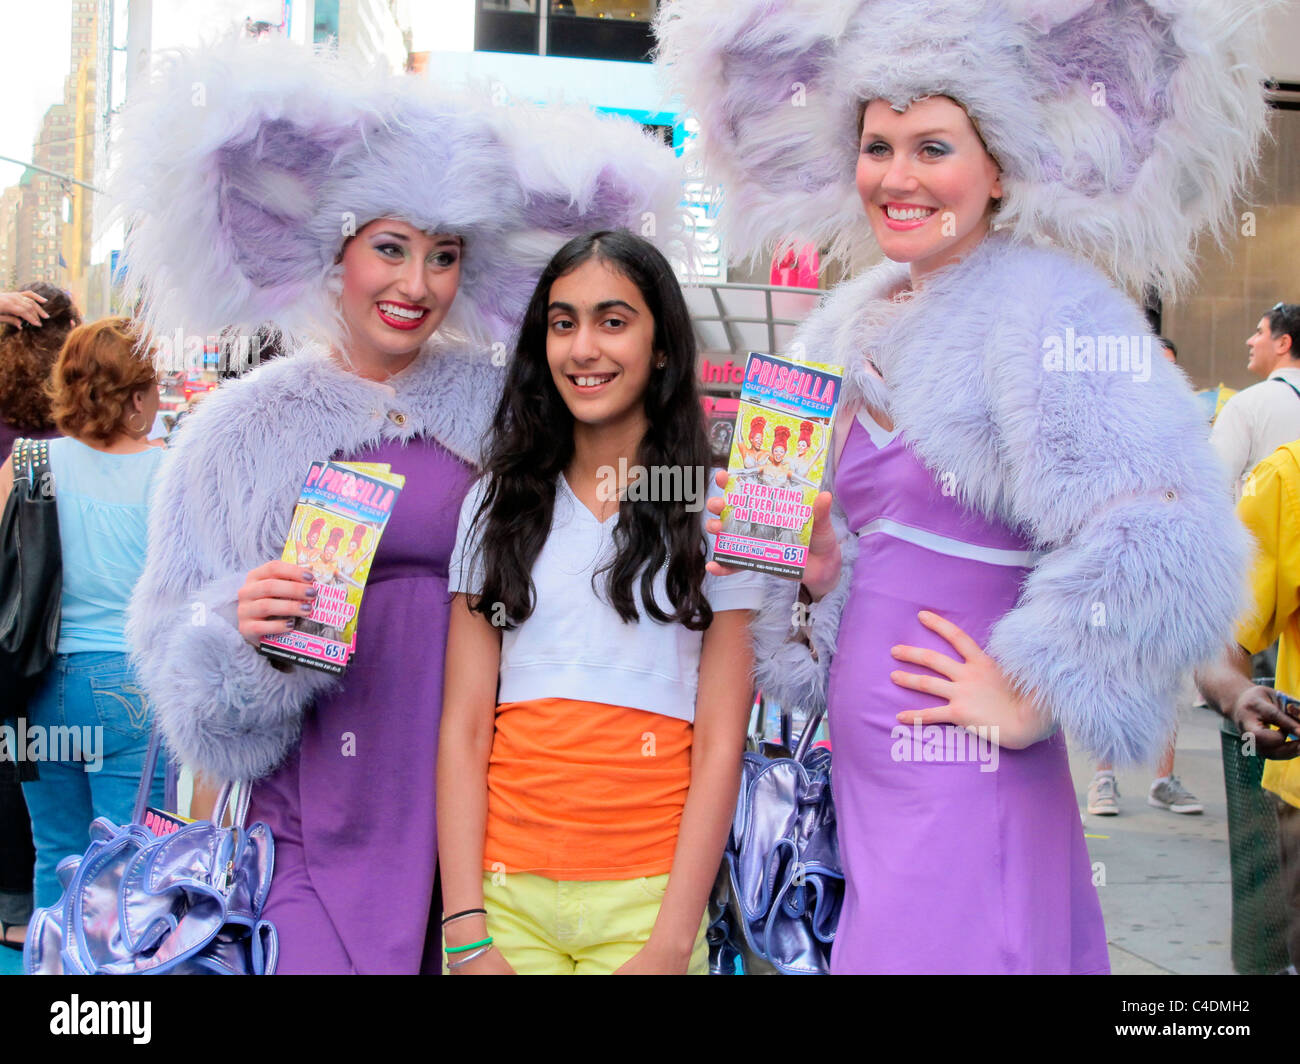 Young girl posing with Priscilla - Queen of the Desert promoters in Times Square New York City - Stock Image